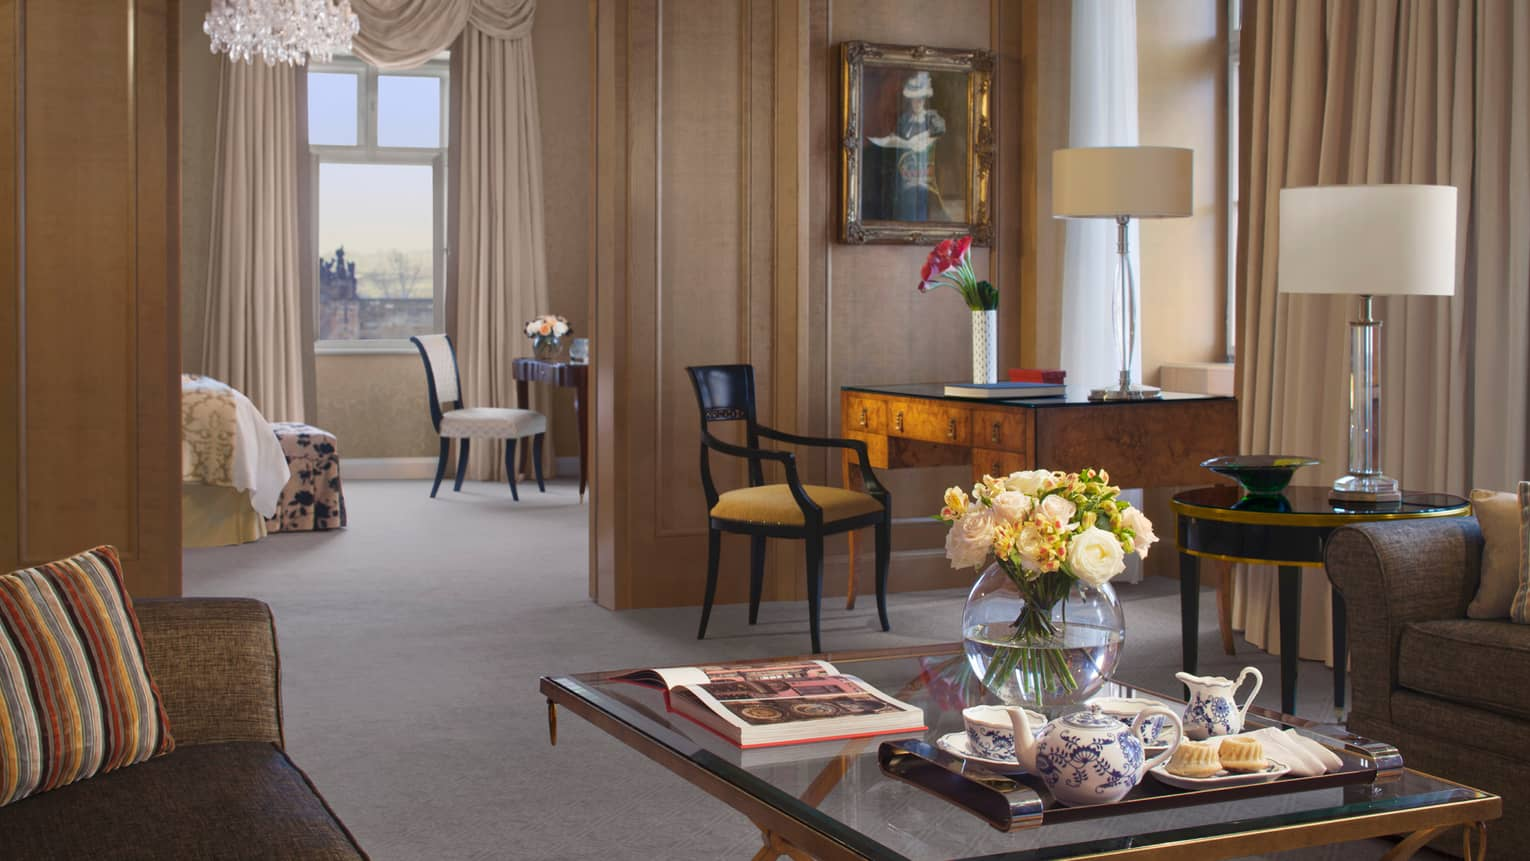 Premier Suite living room, glass coffee table with open book, round glass vase with white roses, tea service